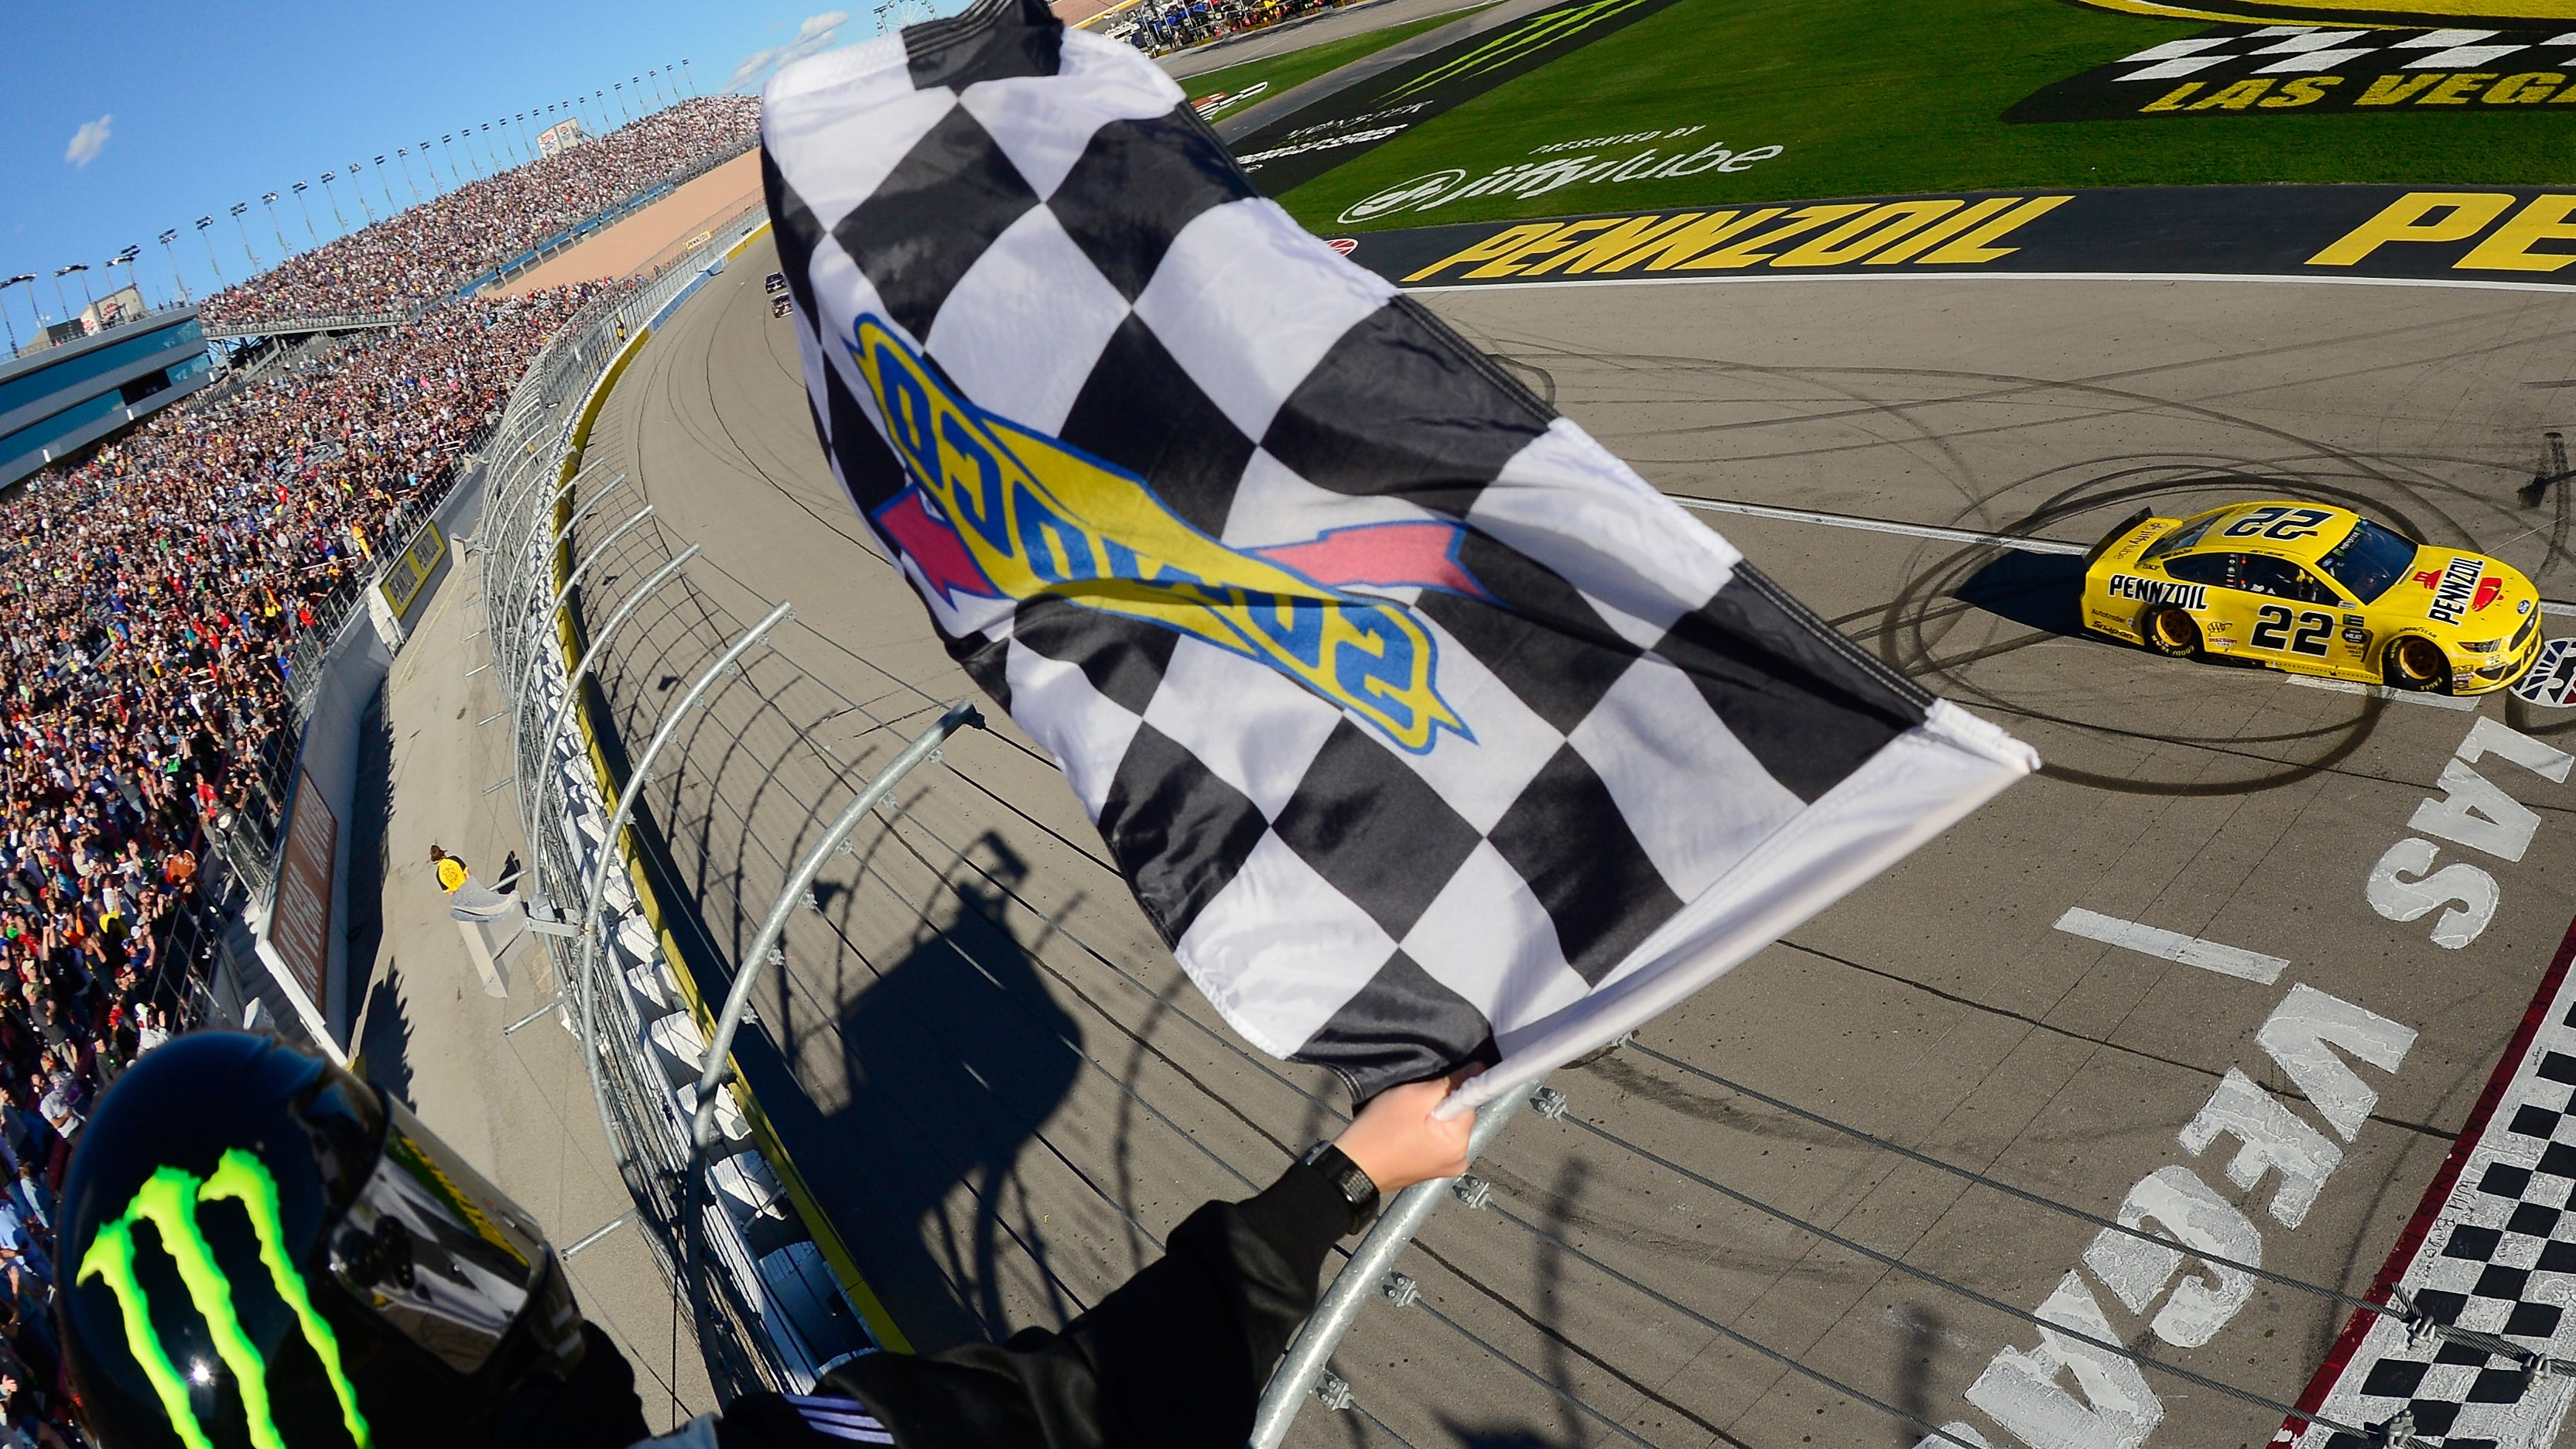 NASCAR at Kansas 2019: Schedule, lineup, TV and more for Hollywood Casino 400 playoff race – USA TODAY